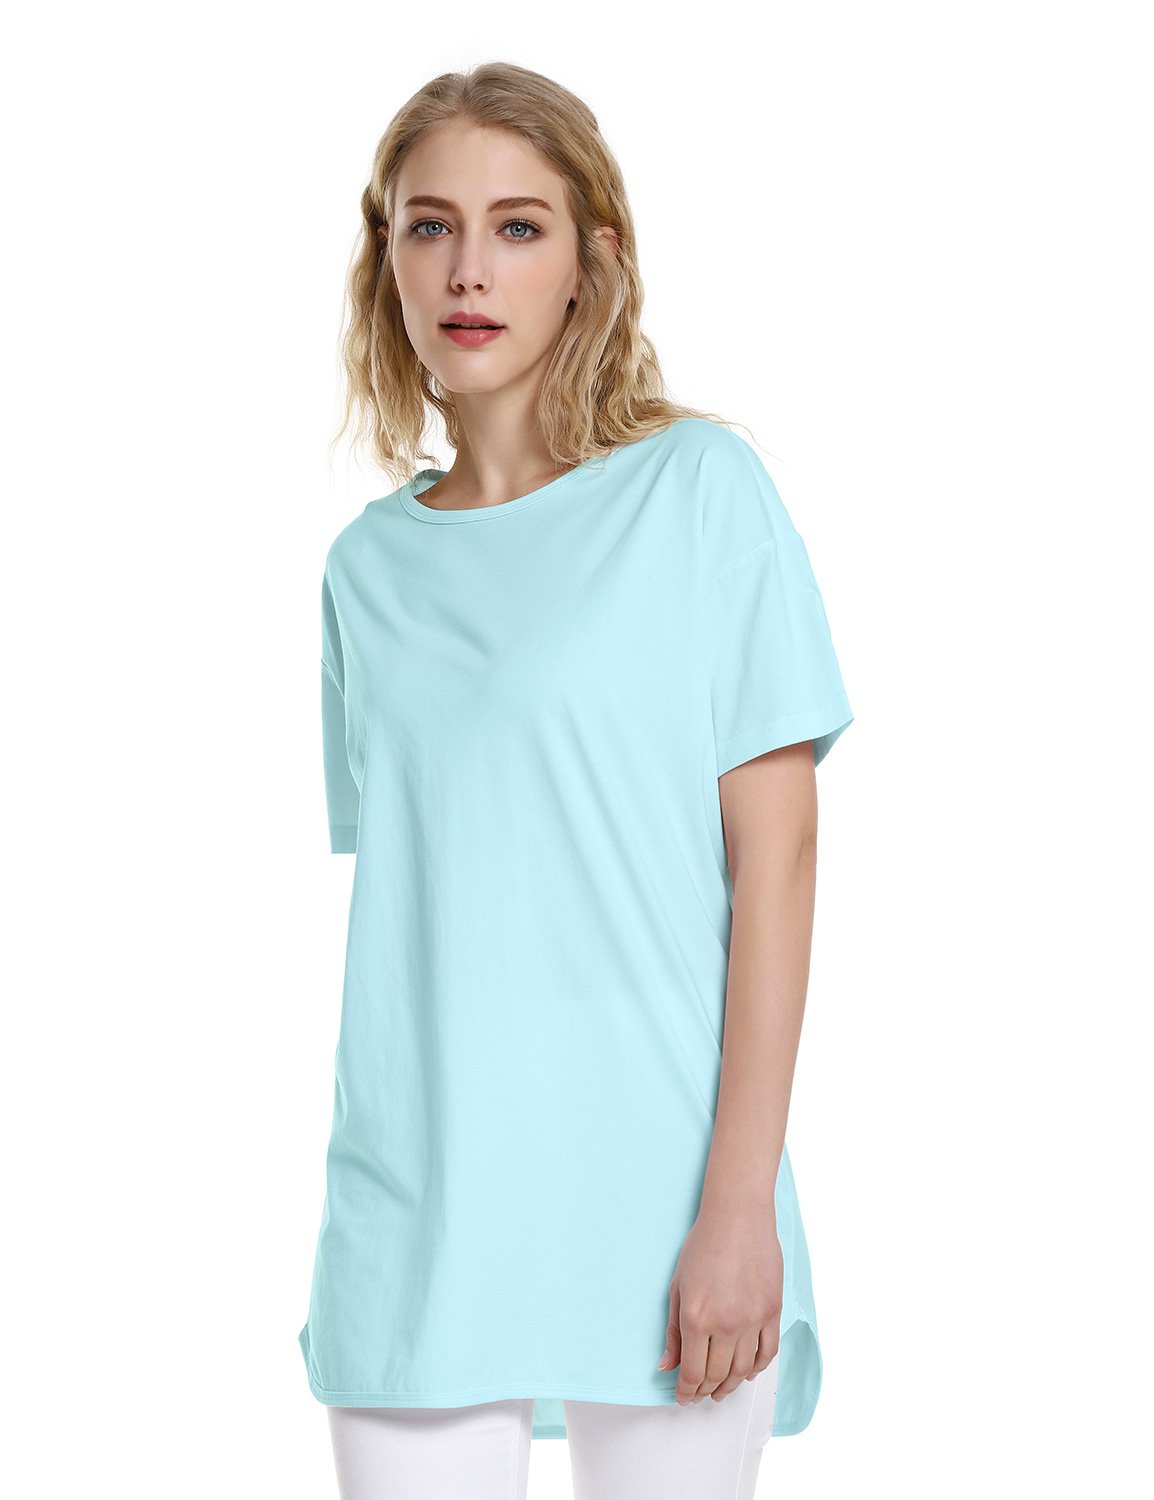 ZAN.STYLE Women's Plus Size Slub Cotton Tunic Tee Shirt Long T Shirt for Leggings Medium Style 2-Light Blue by ZAN.STYLE